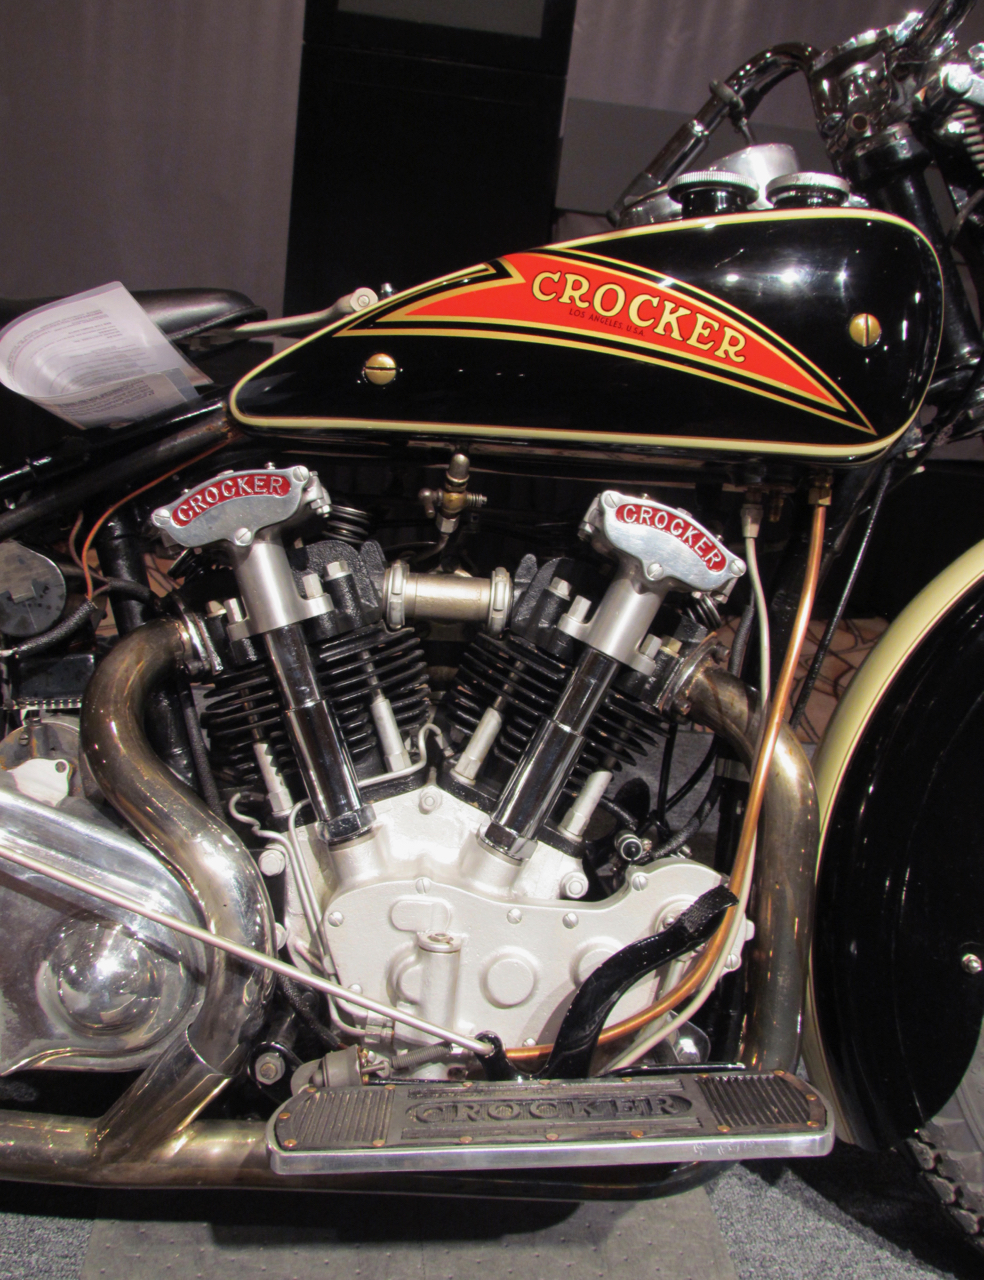 Hemi-headed V-twin made Crocker 10-15 mph faster than other motorcycles